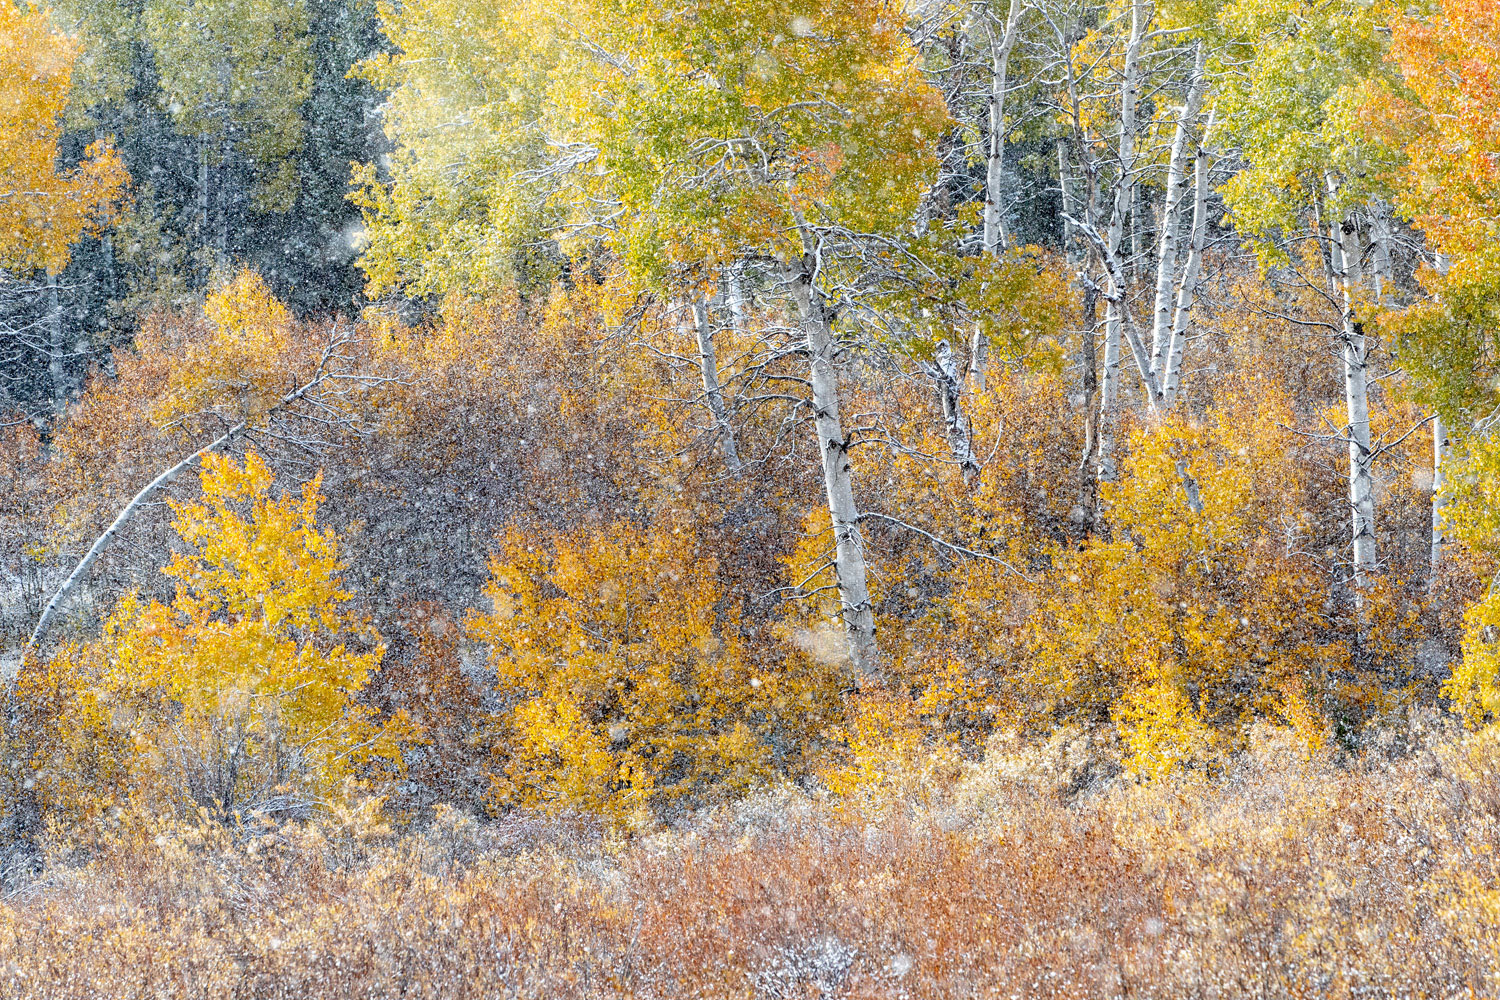 As autumn's colors peak in late September 2019, a squall of snow blows in, reminding that winter is just days away.